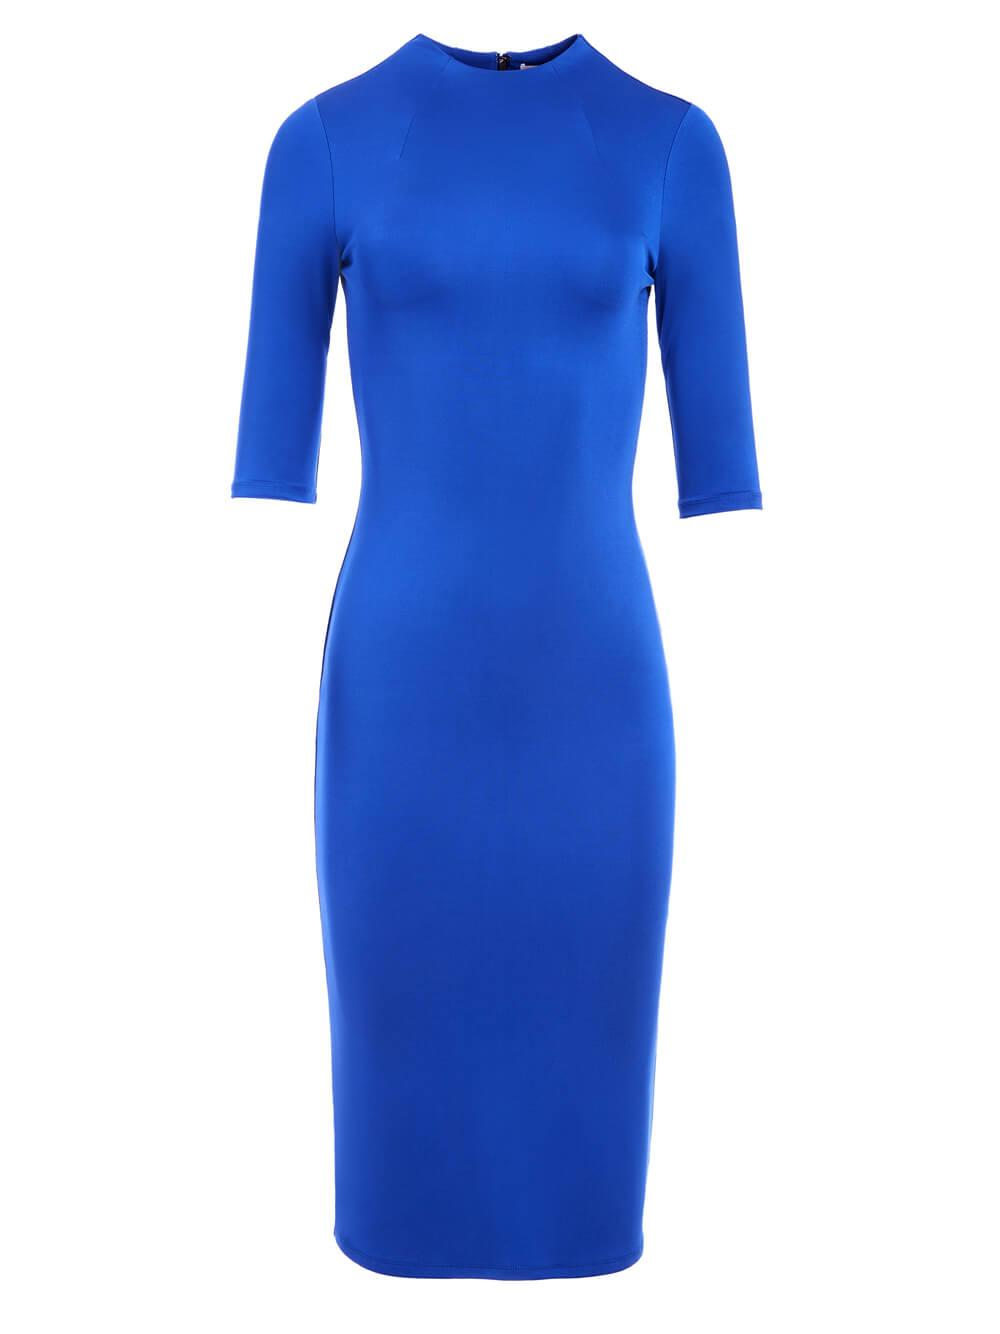 Delora Mock Neck Dress